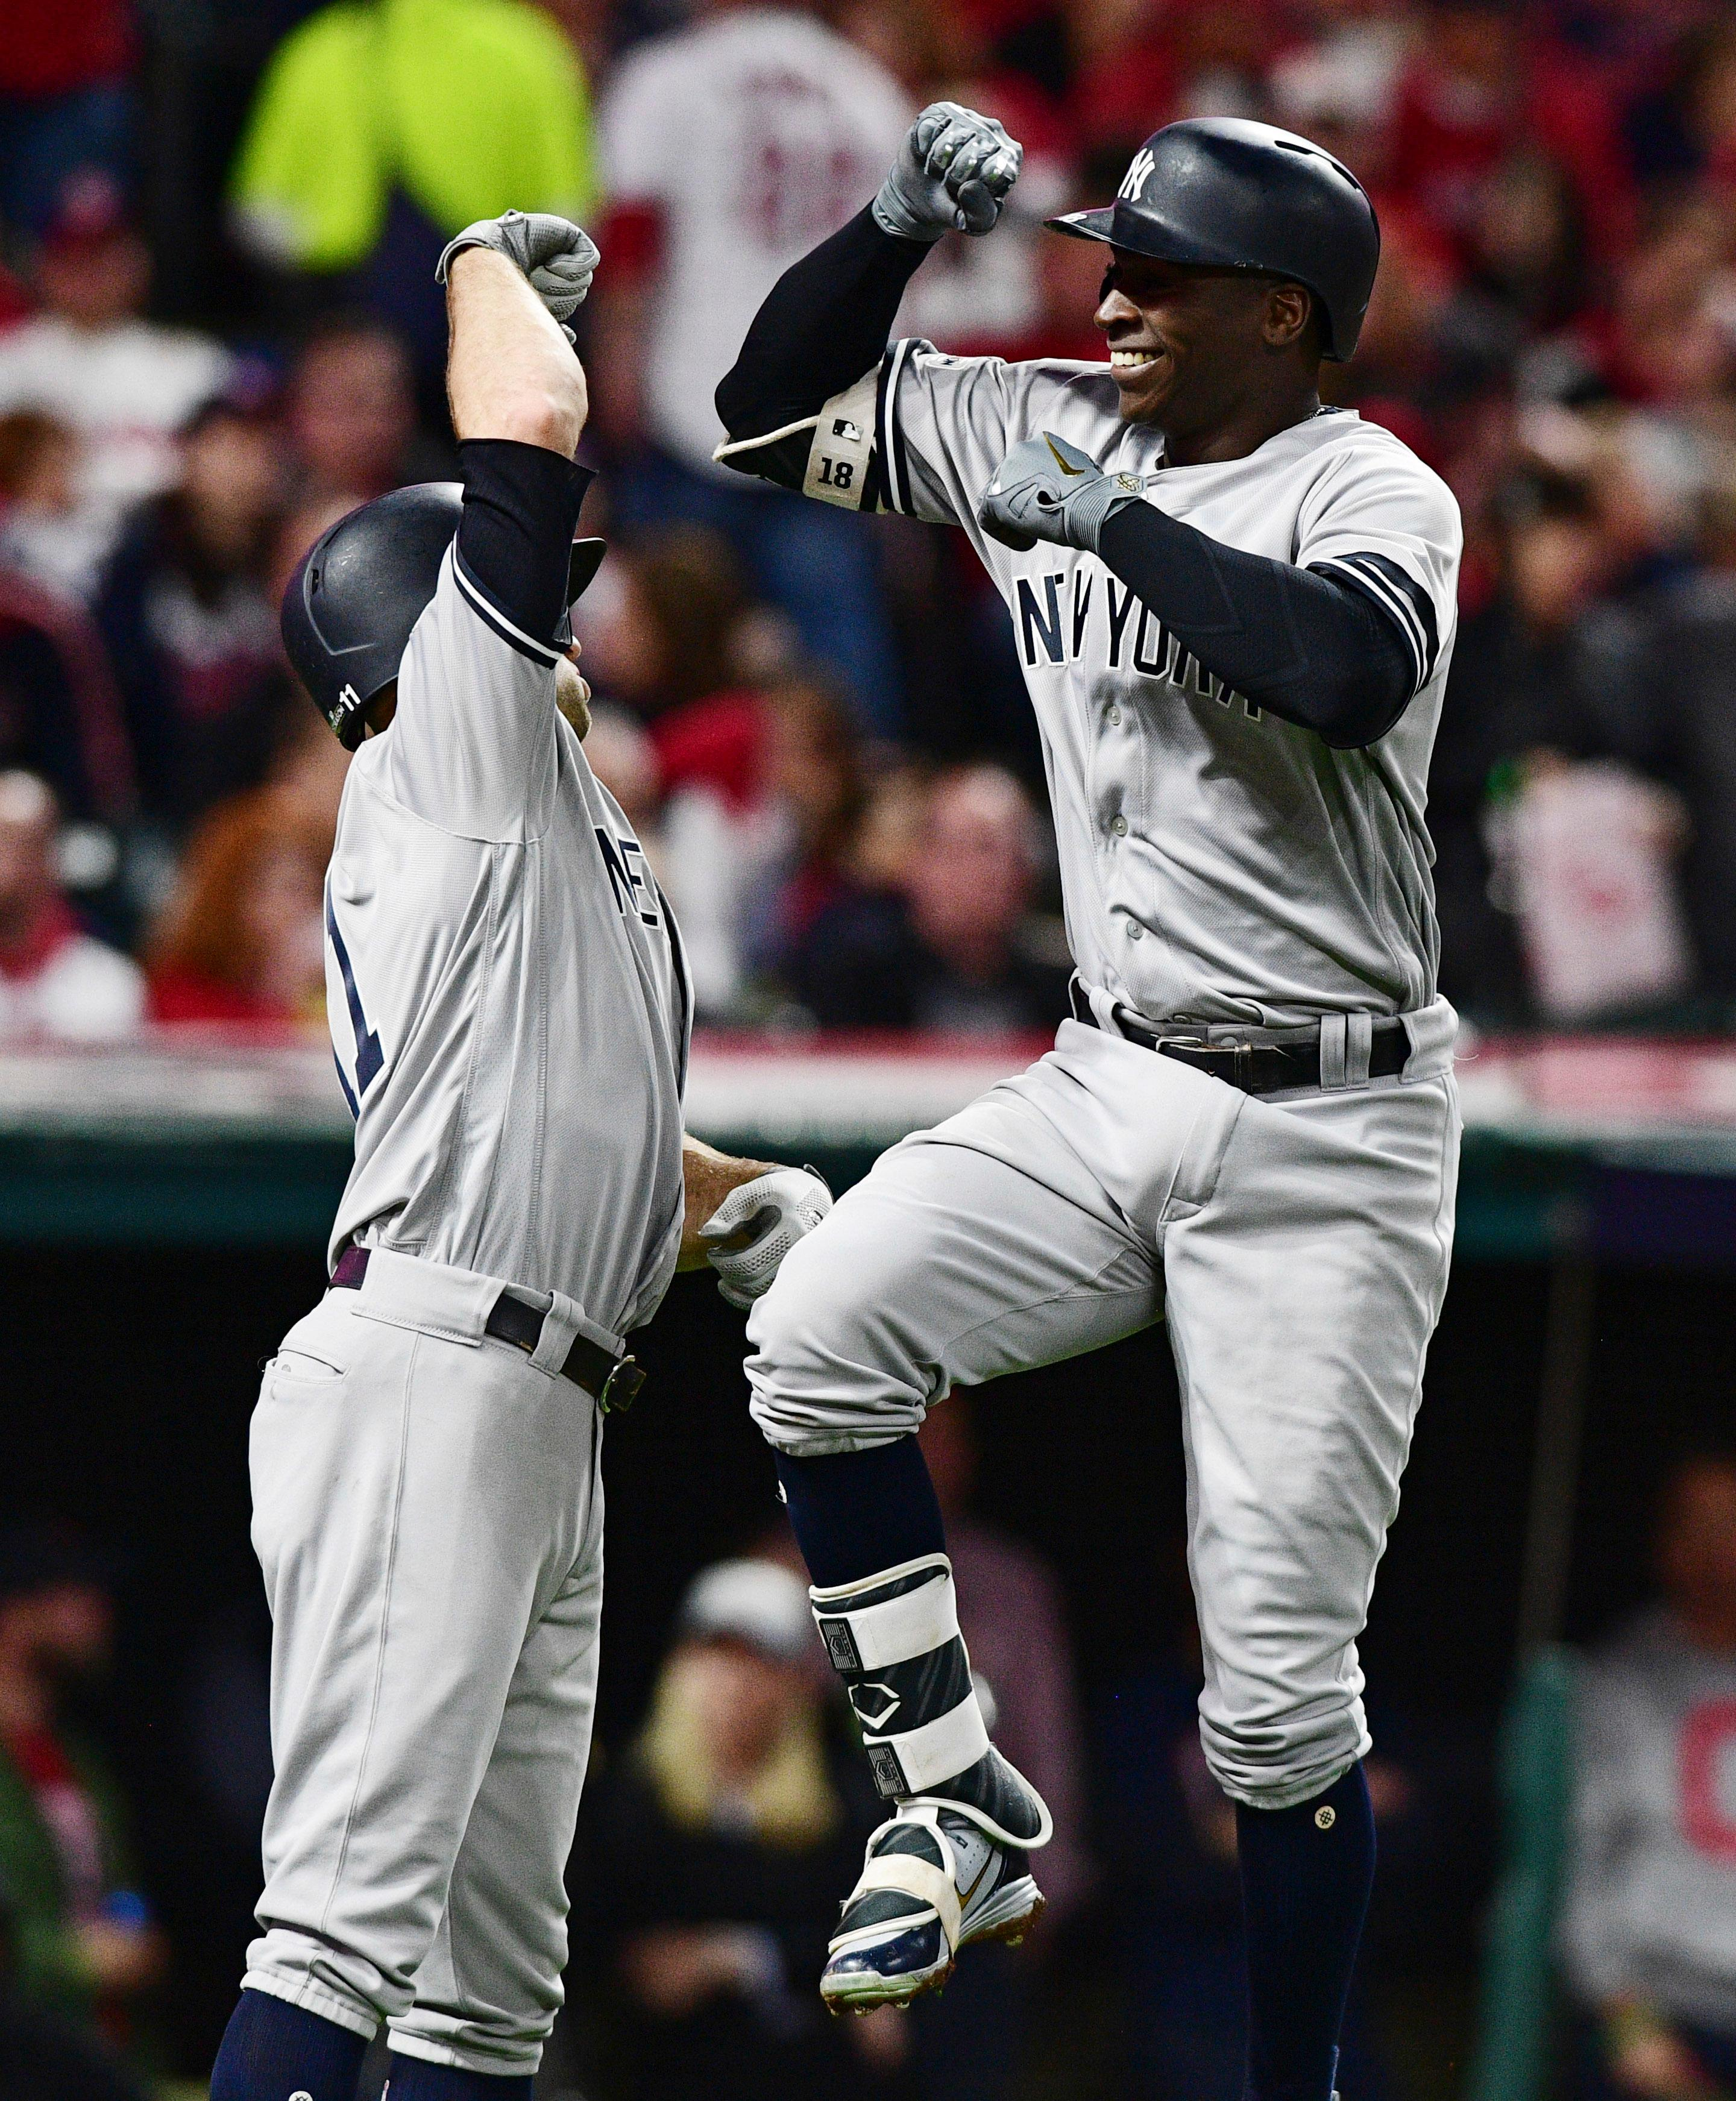 New York Yankees' Didi Gregorius, right, is congratulated by Brett Gardner after Gregorius hit a two-run home run off Cleveland Indians starting pitcher Corey Kluber during the third inning of Game 5 of a baseball American League Division Series, Wednesday, Oct. 11, 2017, in Cleveland. Gardner scored on the play. (AP Photo/David Dermer)